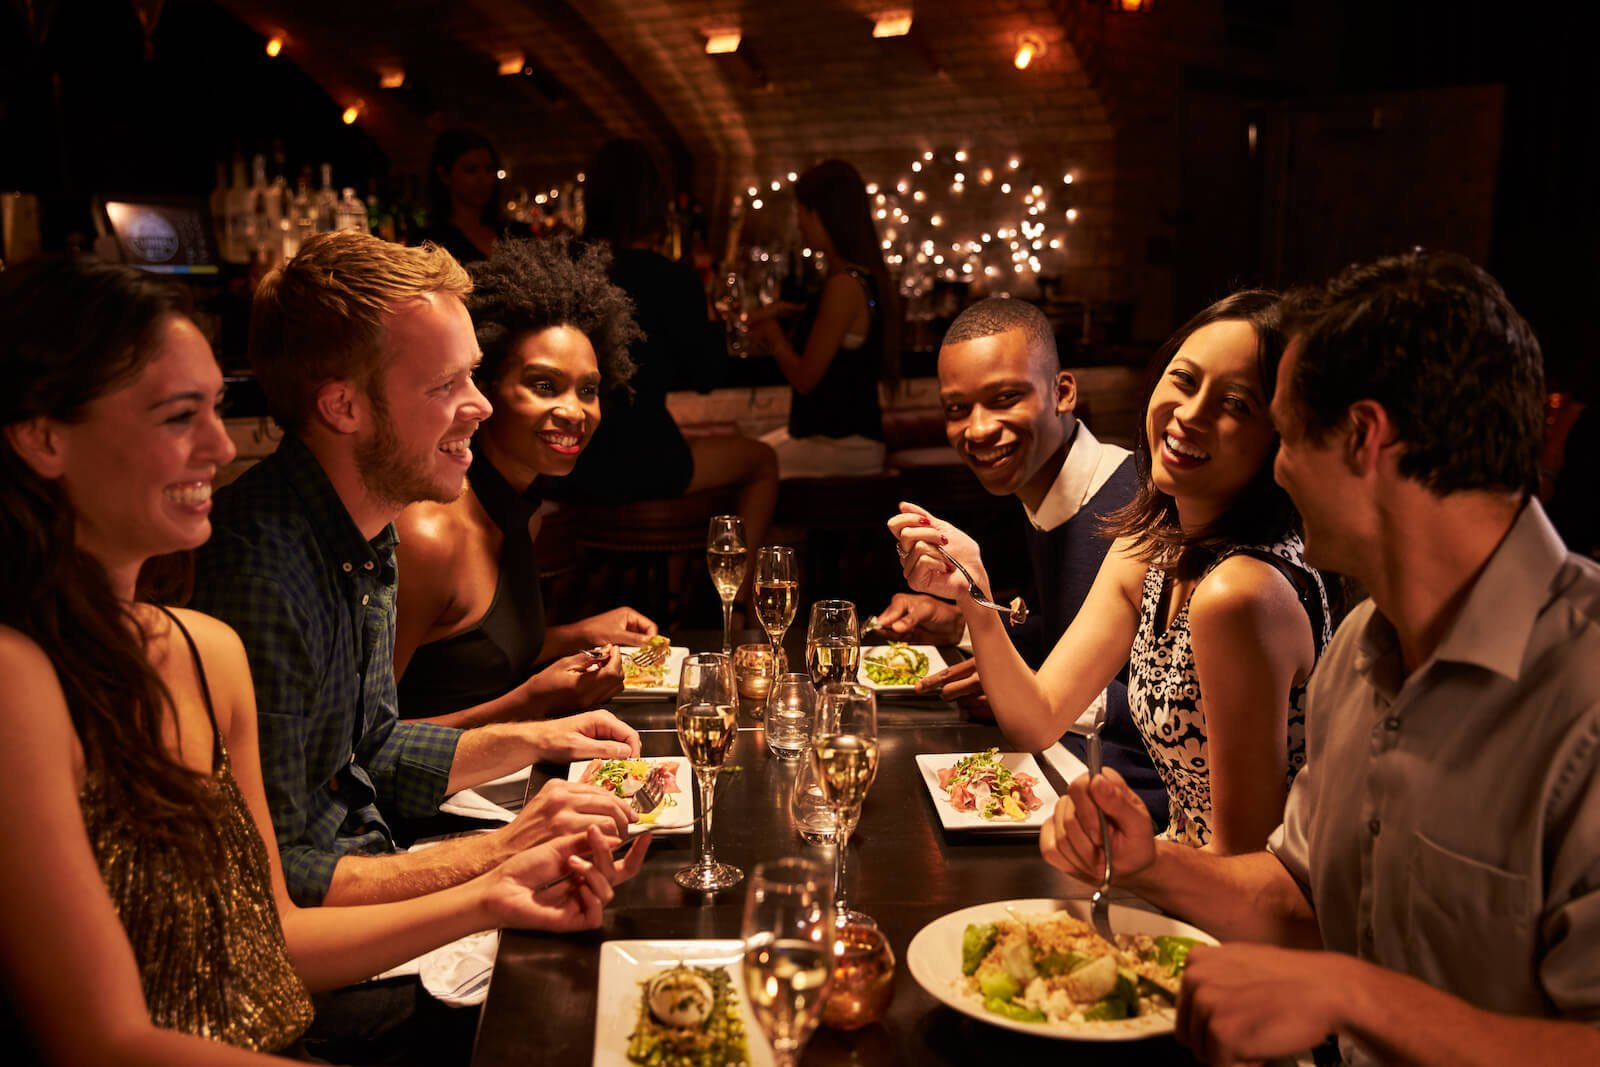 Elimination diet meal plan: group of friends having dinner at a restaurant